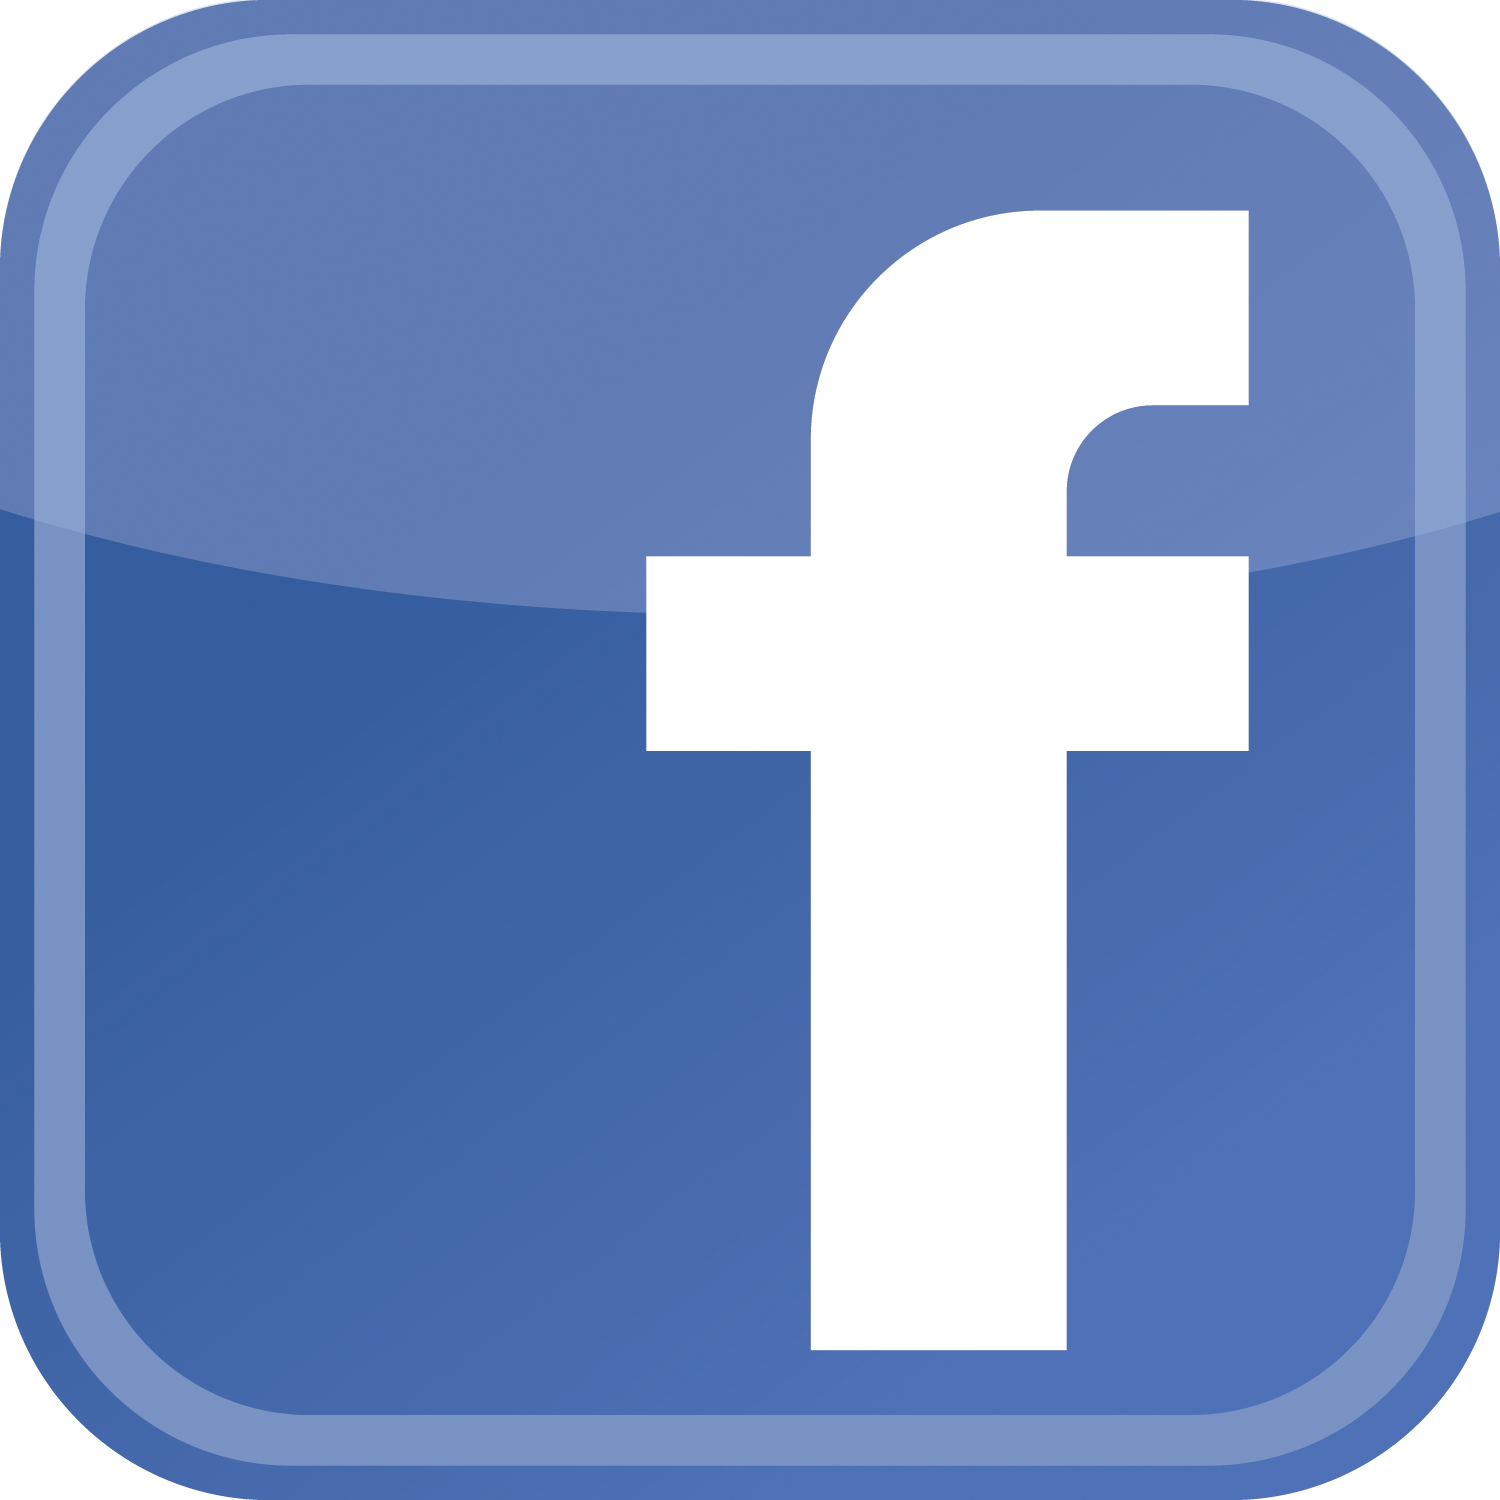 The Serviced Office Company Facebook